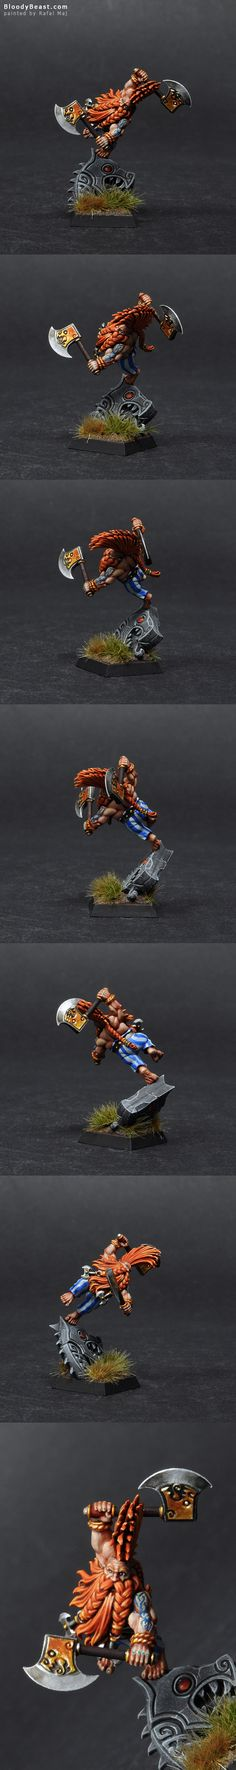 The Internet's largest gallery of painted miniatures, with a large repository of how-to articles on miniature painting Warhammer Dwarfs, Warhammer Armies, Warhammer 40k, Fantasy Dwarf, Fantasy Battle, Fantasy Paintings, Mini Paintings, Minis, Fantasy Figures